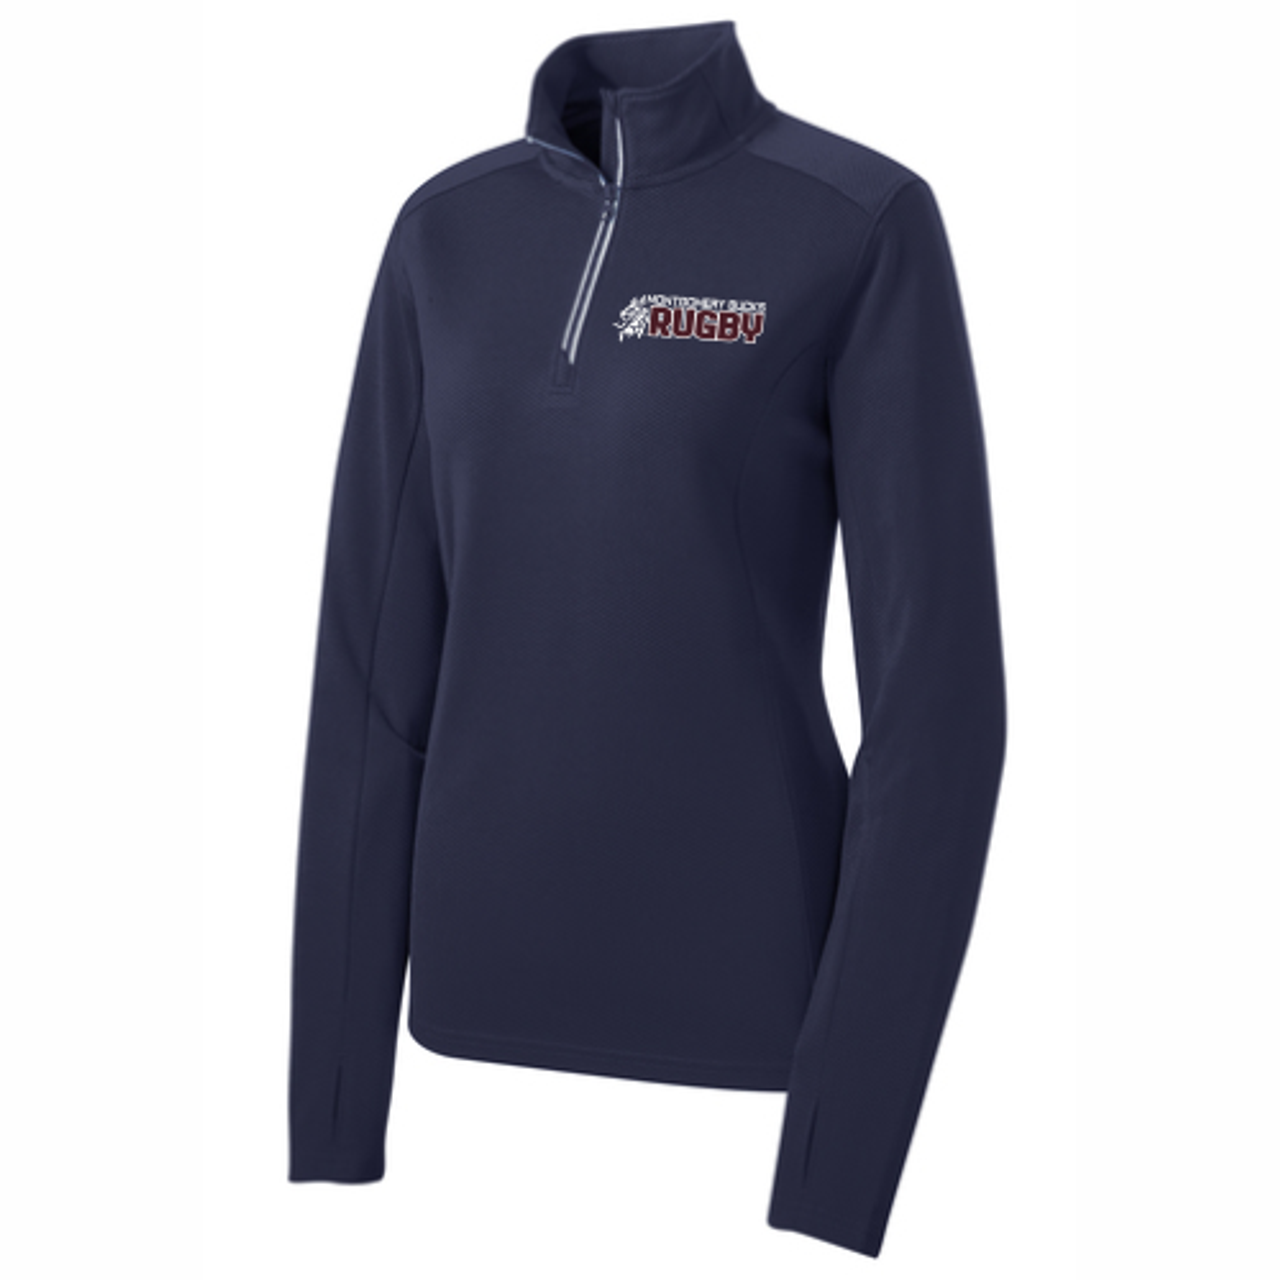 MB Rugby Textured 1/4-Zip Pullover